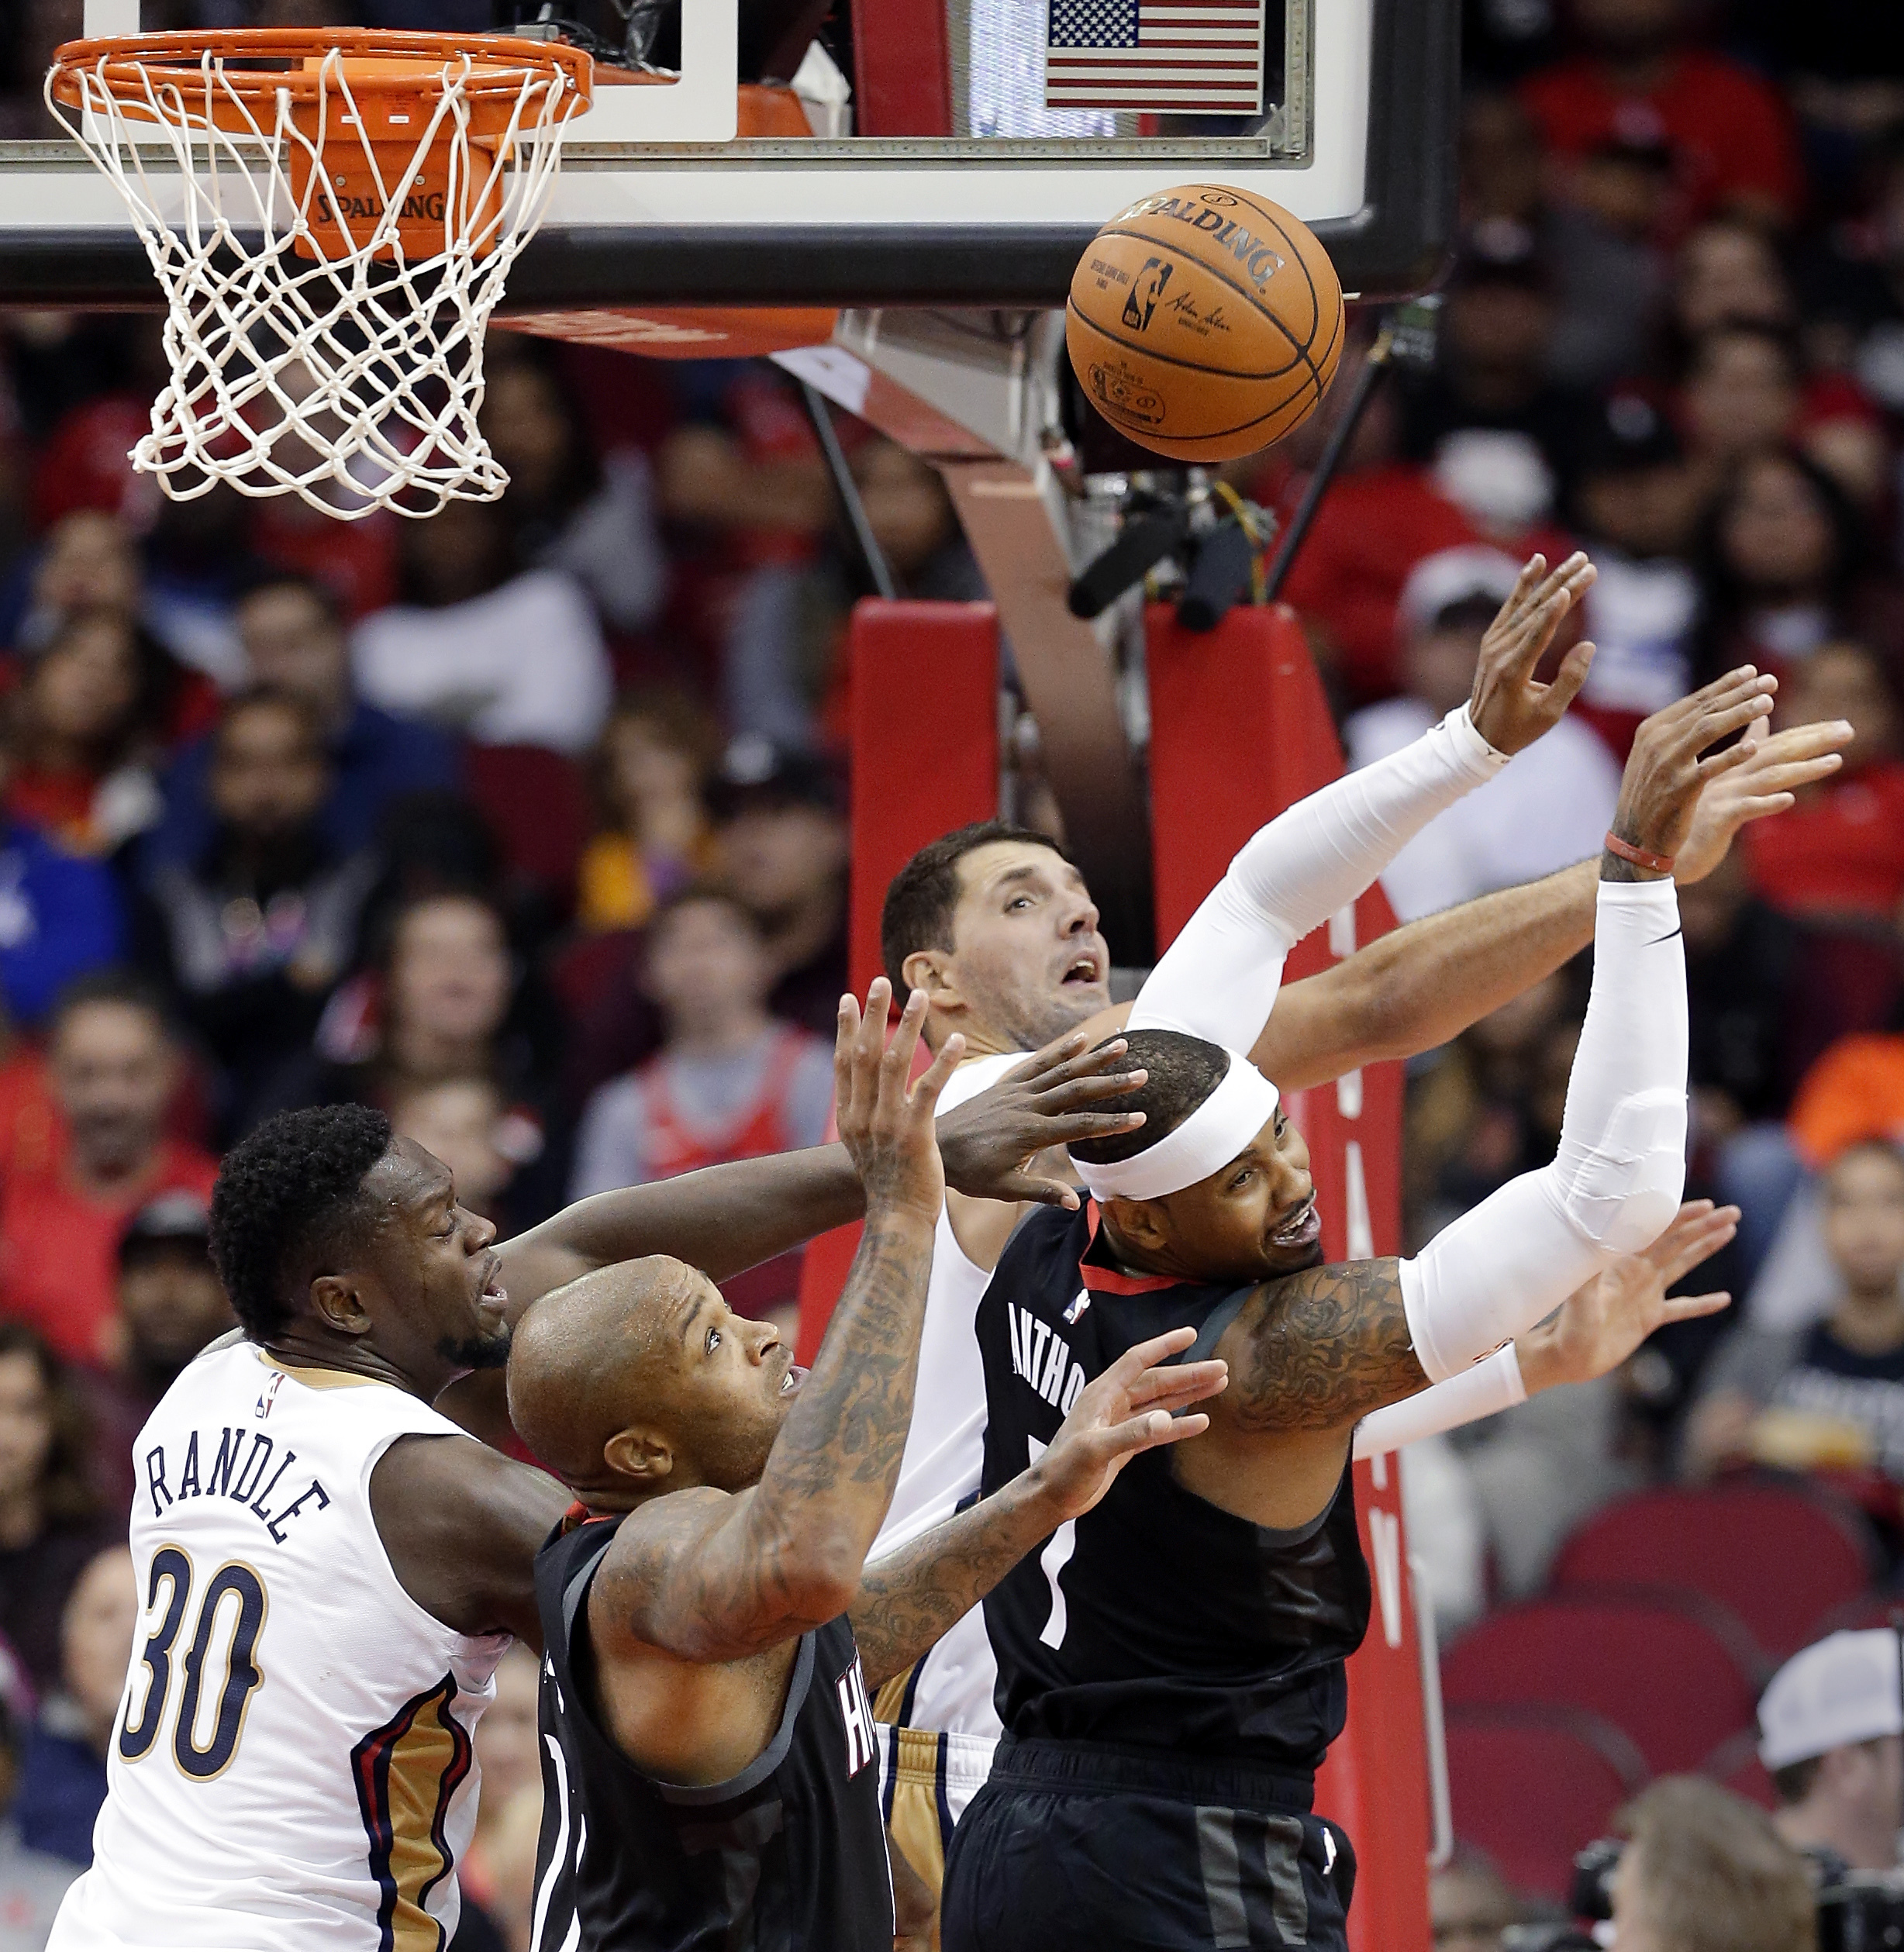 New Orleans Pelicans forward Julius Randle (30) and forward Nikola Mirotic (3) battle for a rebound with Houston Rockets forward PJ Tucker and Carmelo Anthony (7) during the second half of an NBA basketball game Wednesday, Oct. 17, 2018, in Houston. (AP Photo/Michael Wyke) AP